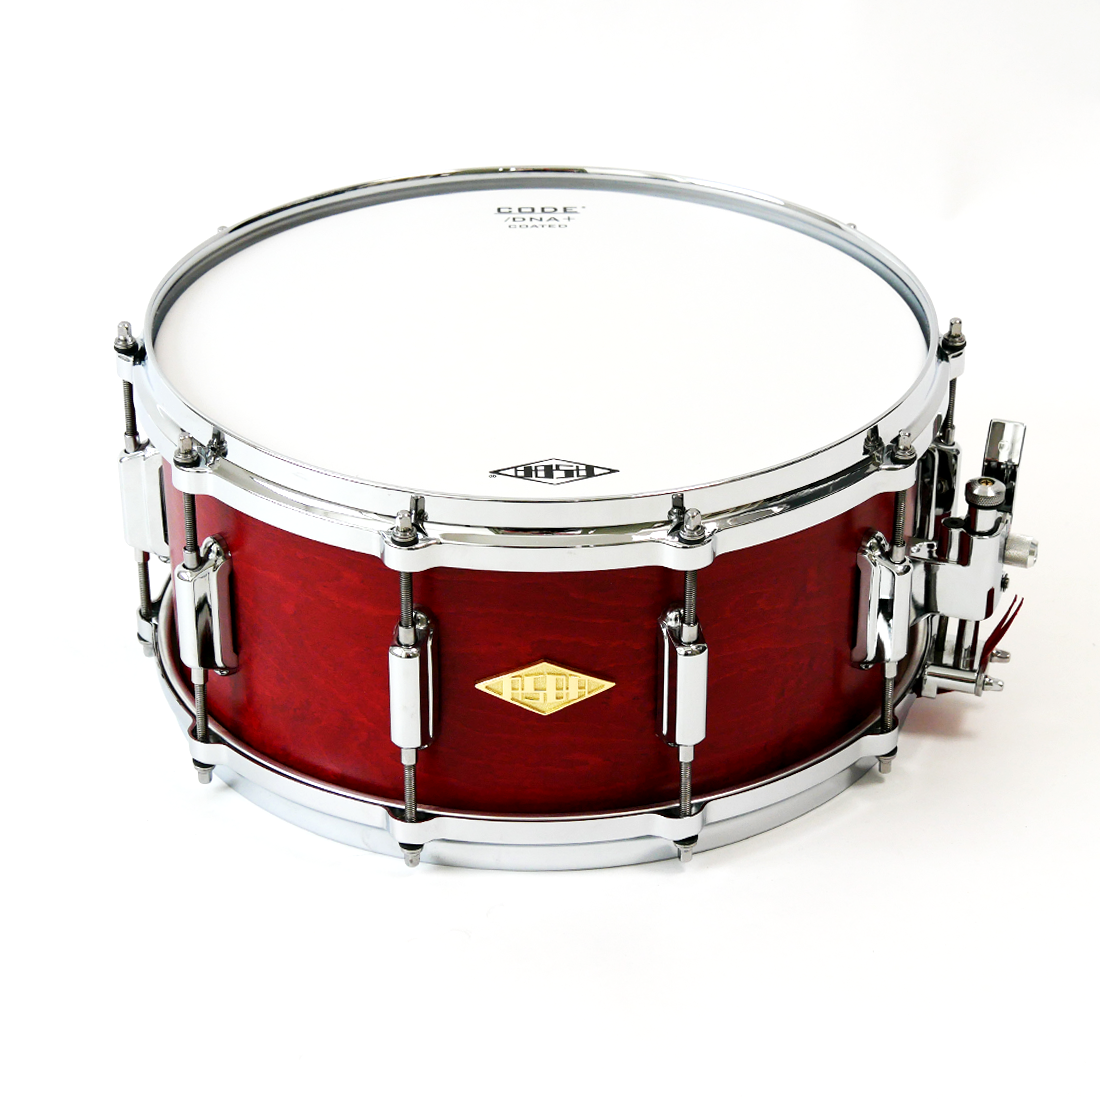 Snare Rive Gauche finish Lou Red full view + front + logo + strainer